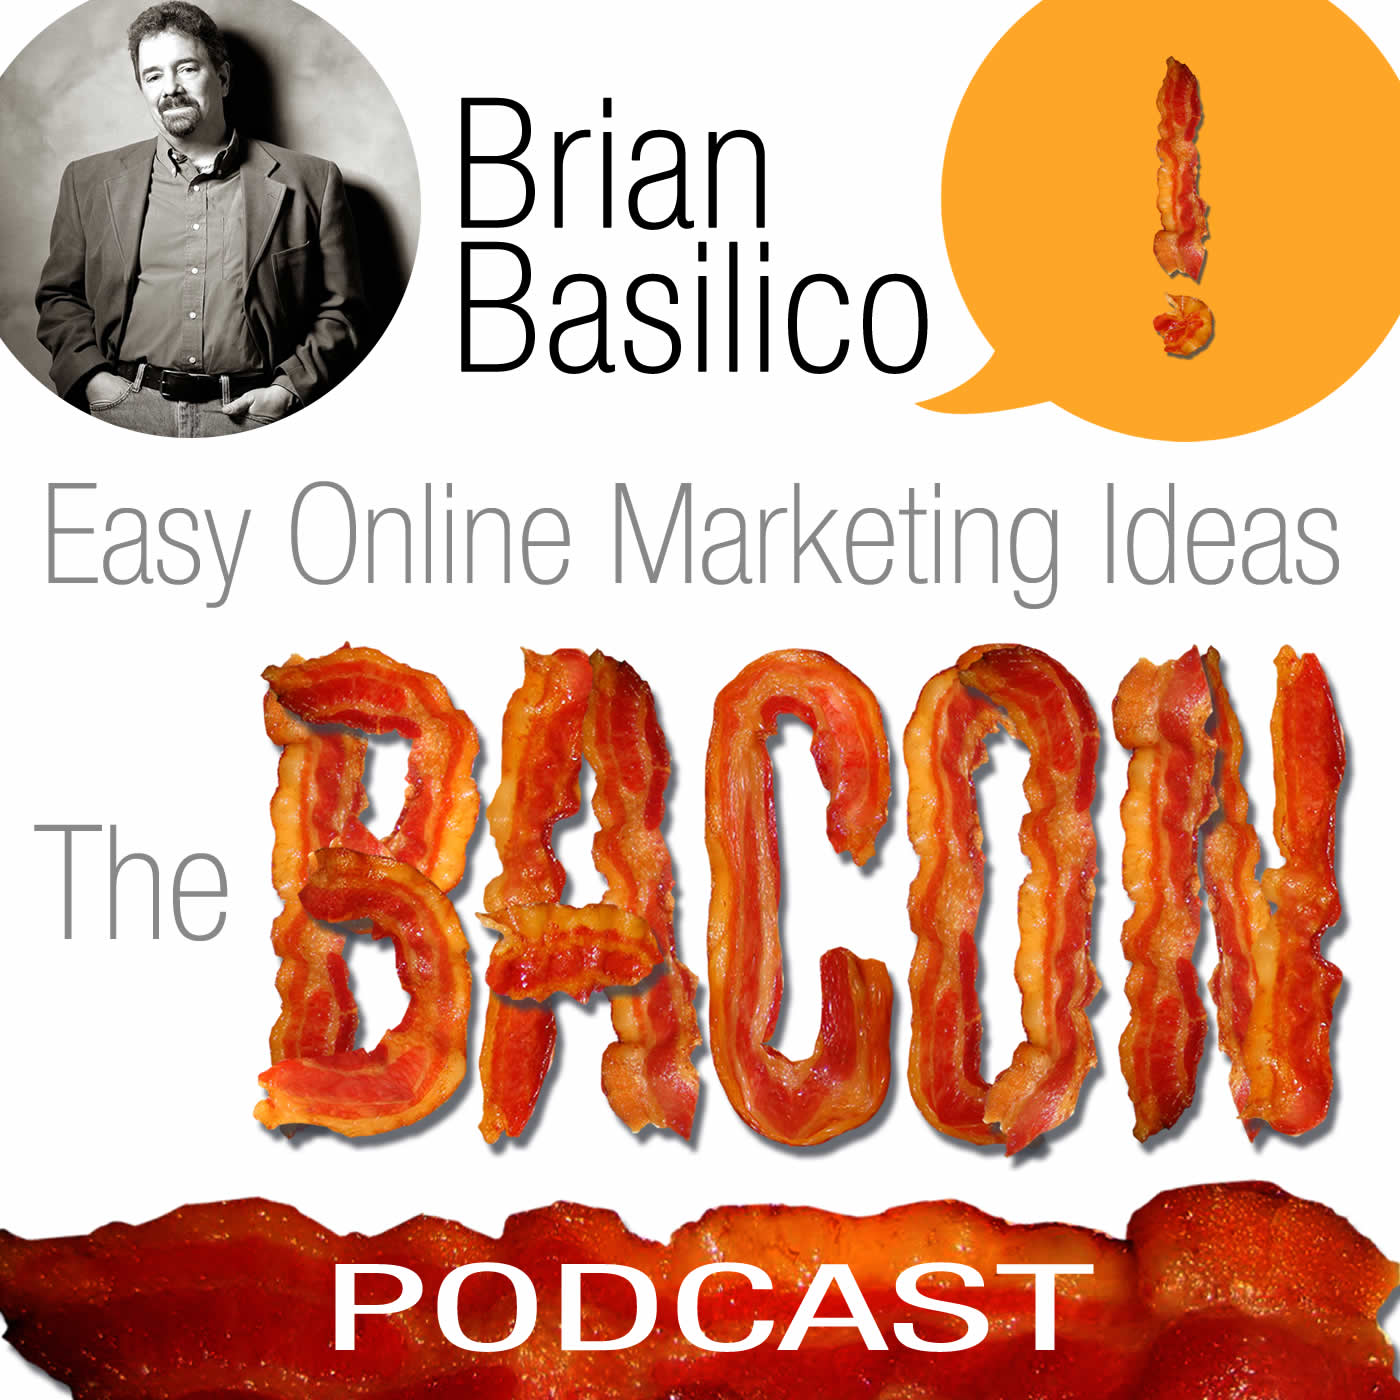 The Bacon Podcast